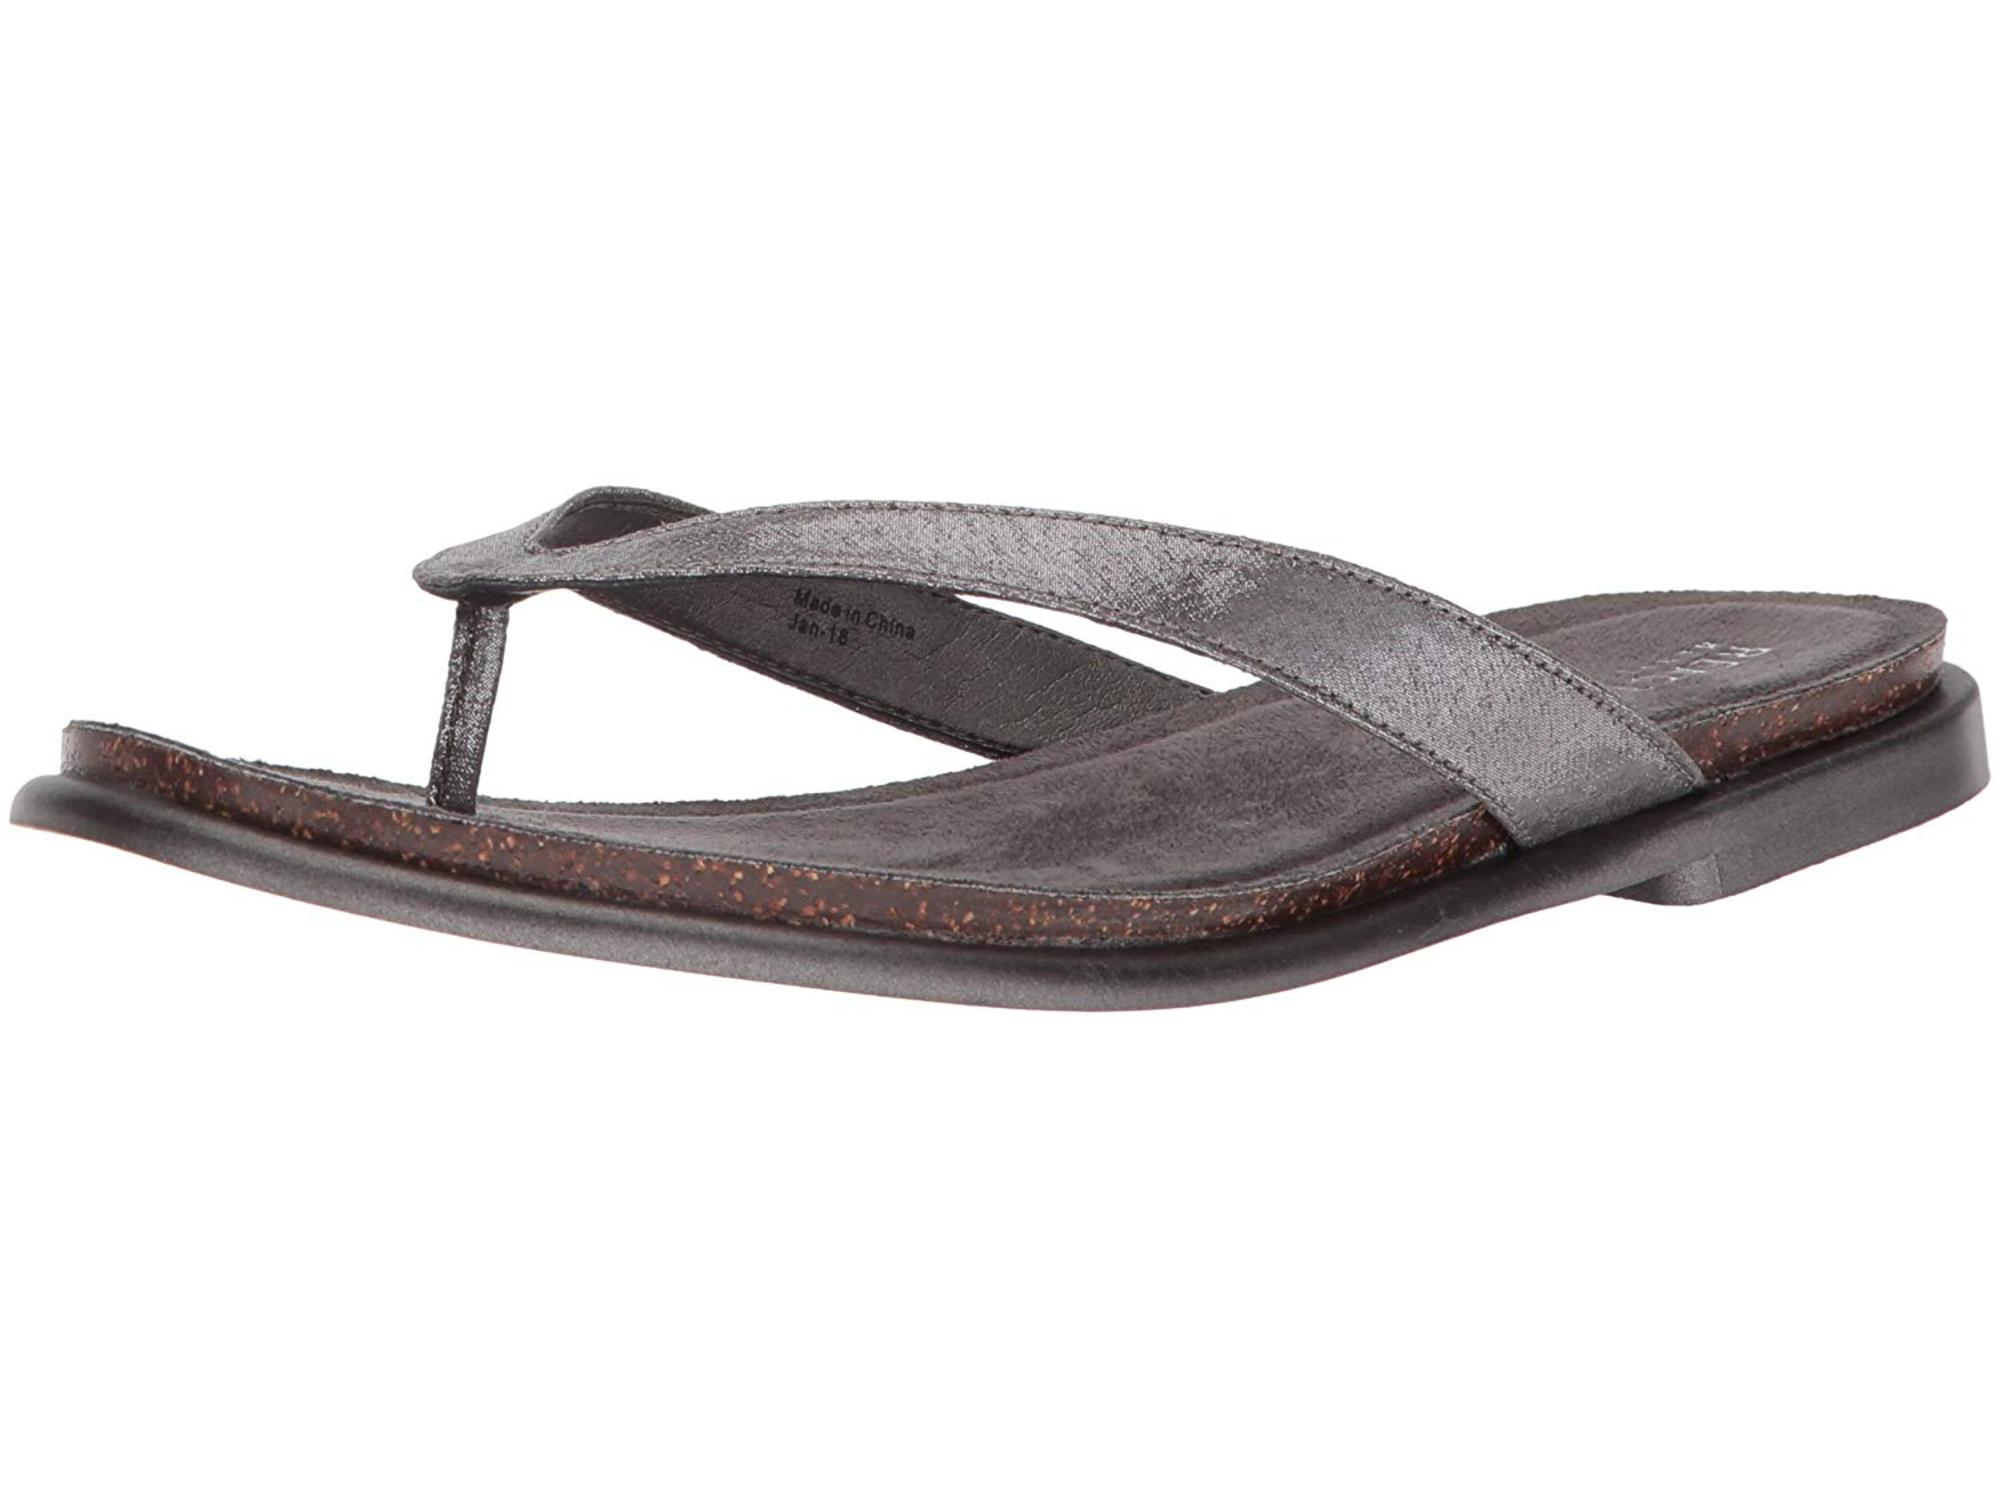 3e919424b79c80 Kenneth Cole REACTION Women s Jel Ing Flat Thong Sandal with